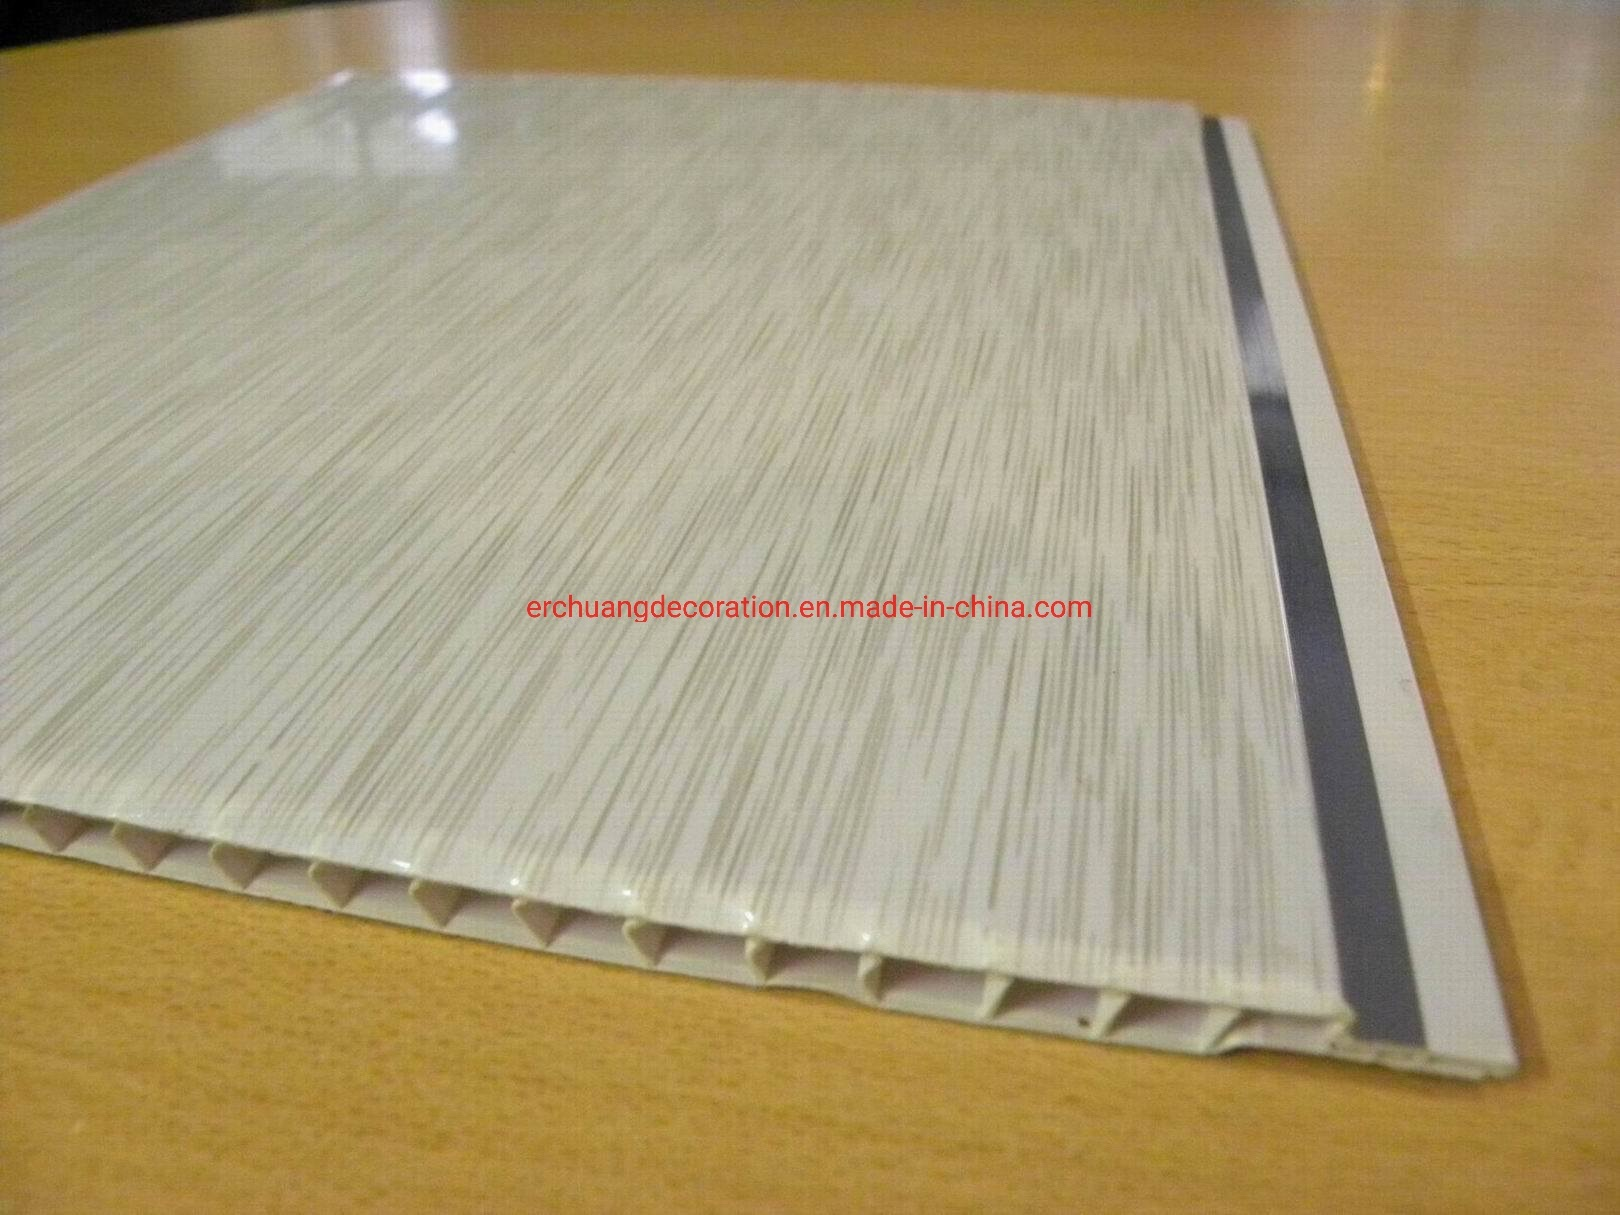 China Wood Plastic Composite Exterior Wall Cladding Boards